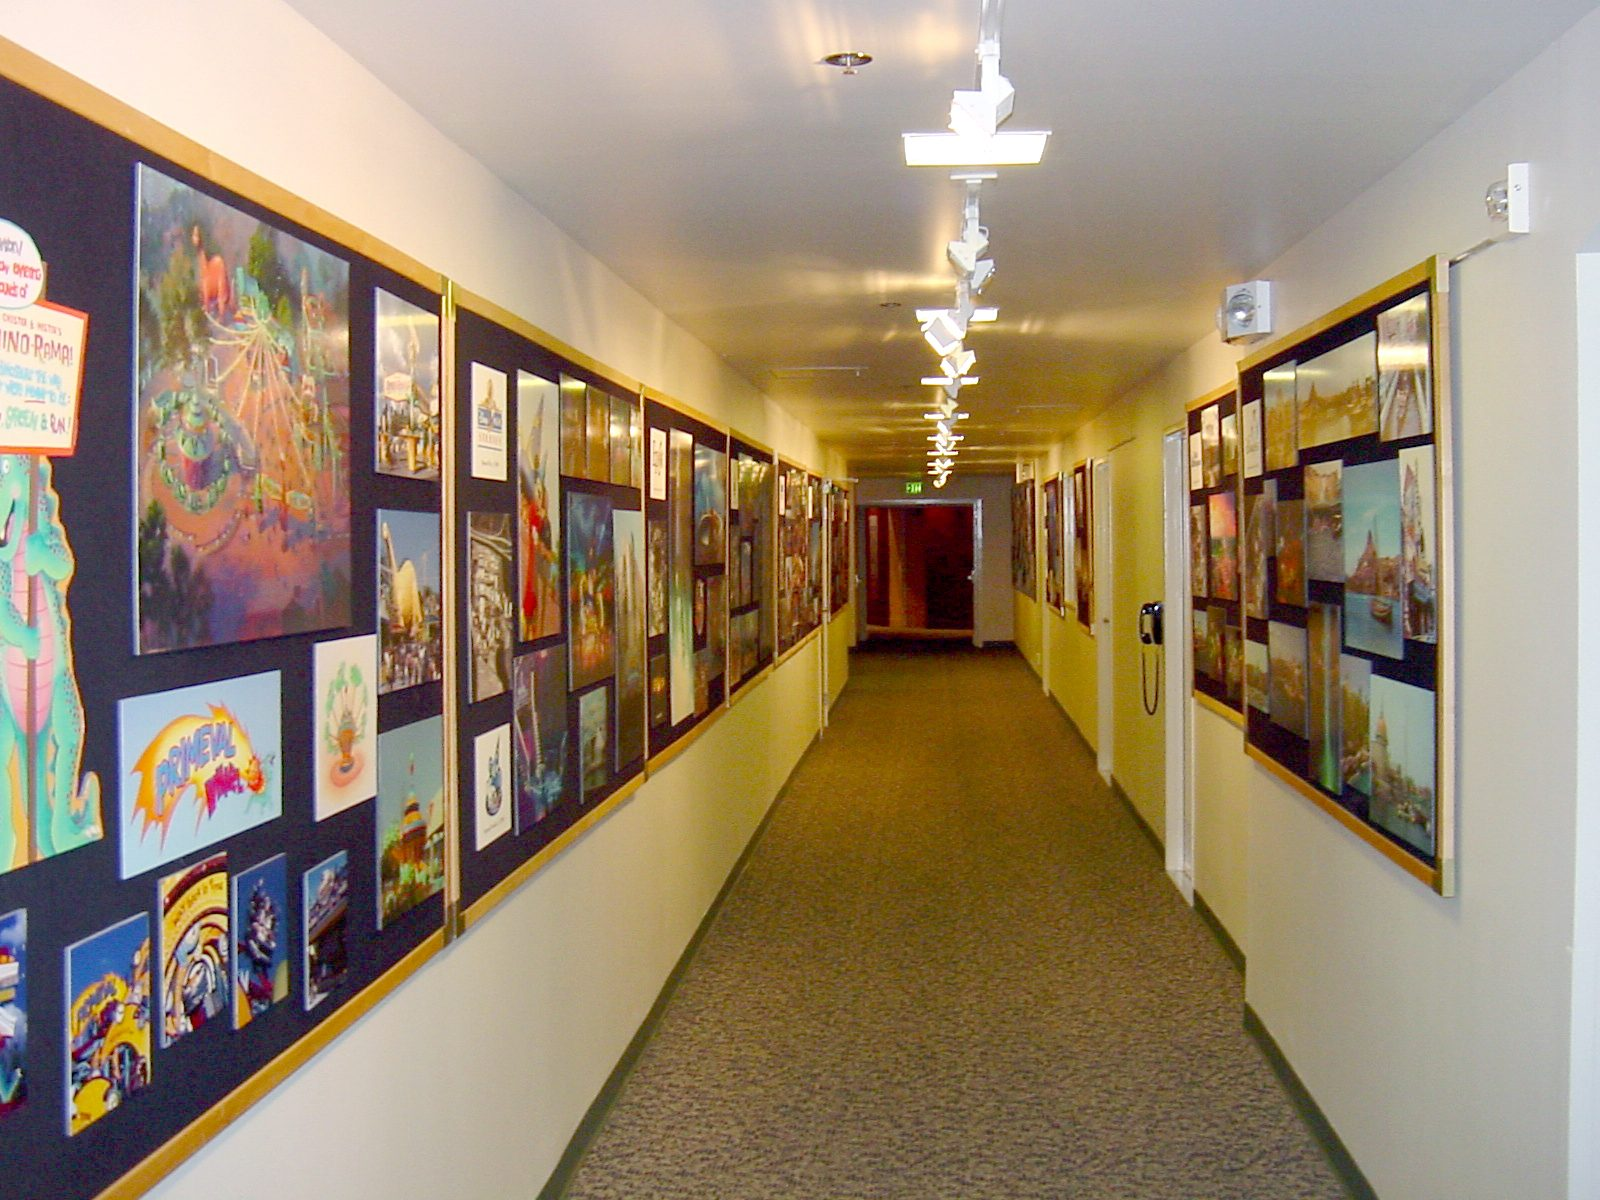 Disney Studios at 1401 S Flower Interior Hallway